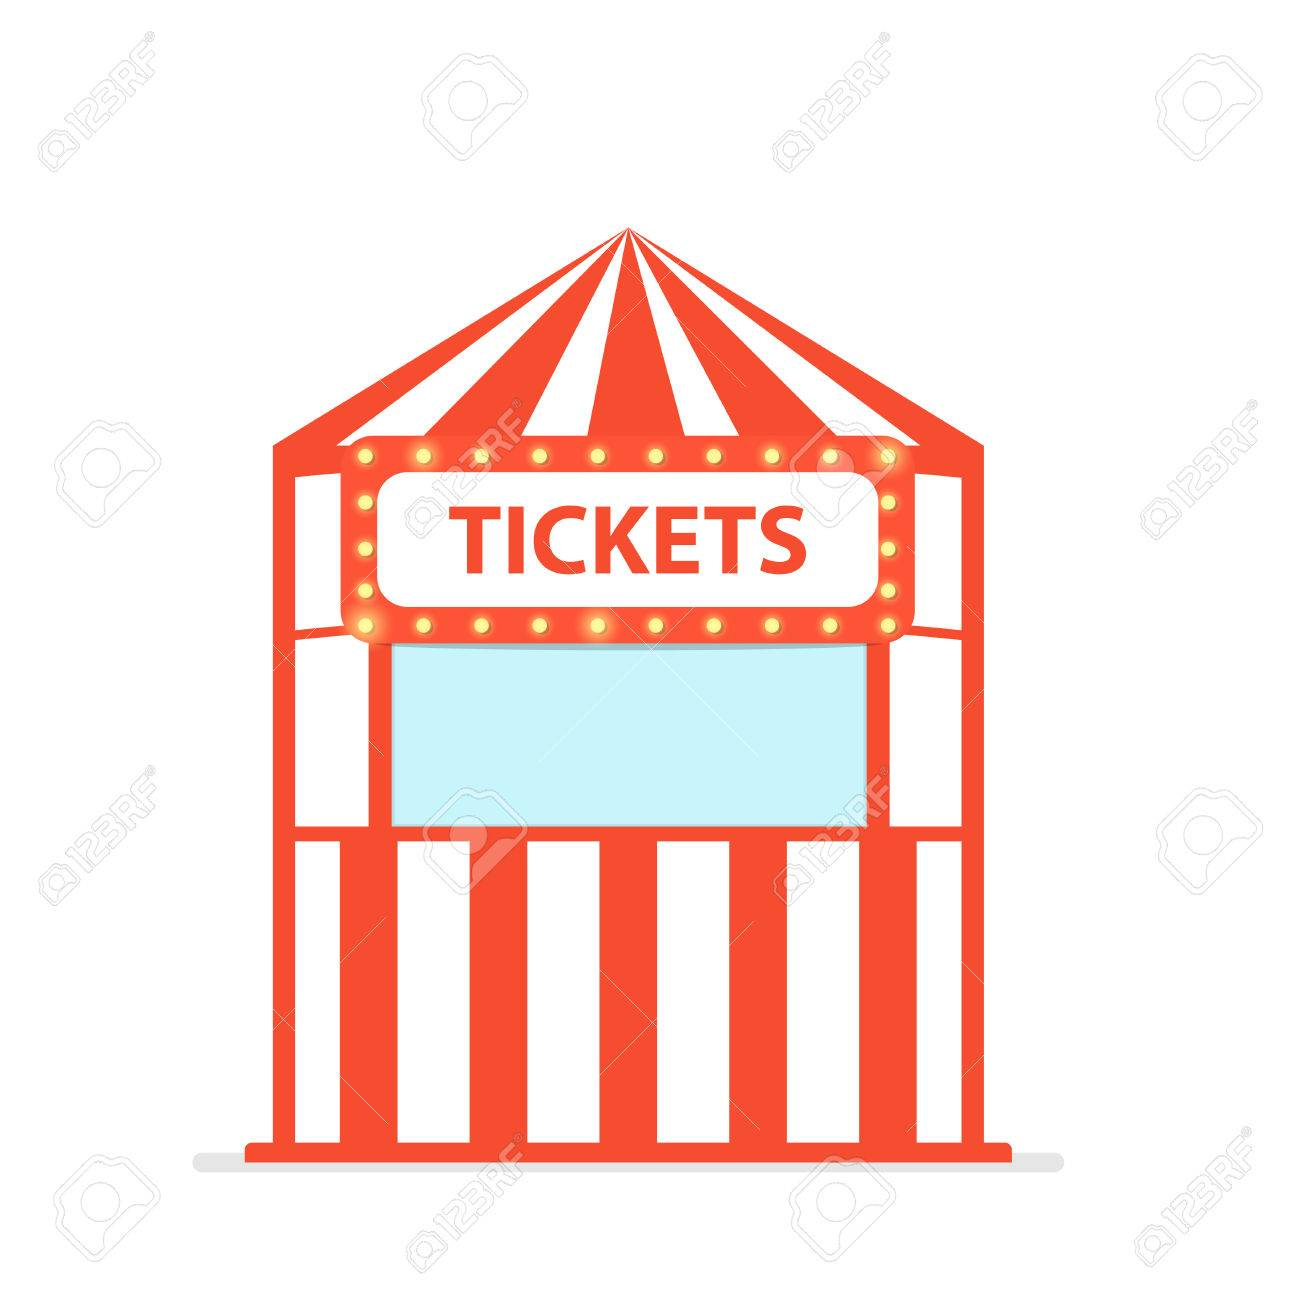 Ticket office clipart clip art free stock Ticket box office » Clipart Station clip art free stock